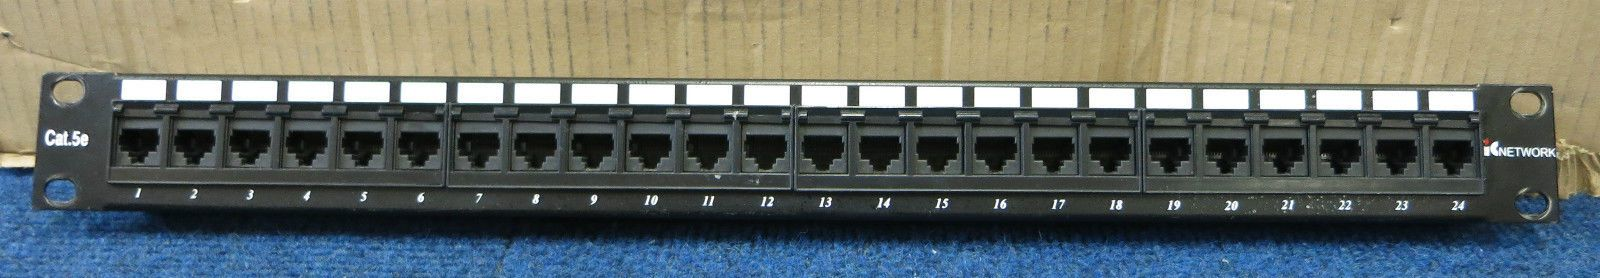 T568b Wiring Diagram Patch Panel : Ic networks port cat e rj ethernet network patch